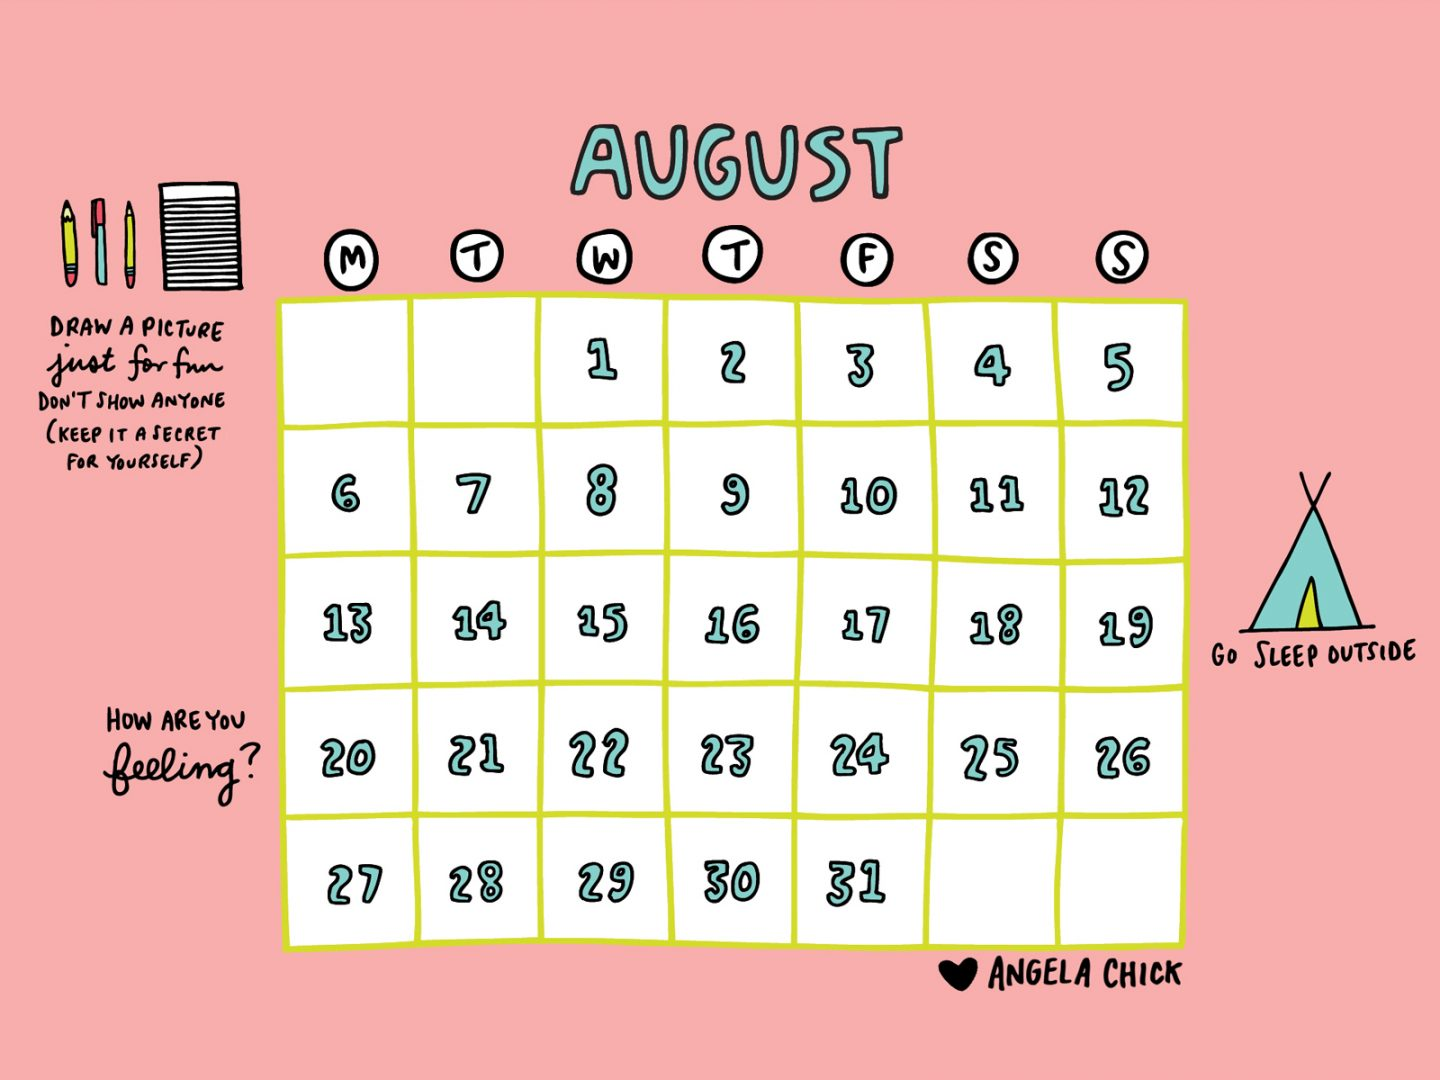 August calendar download by Angela Chick 4-3